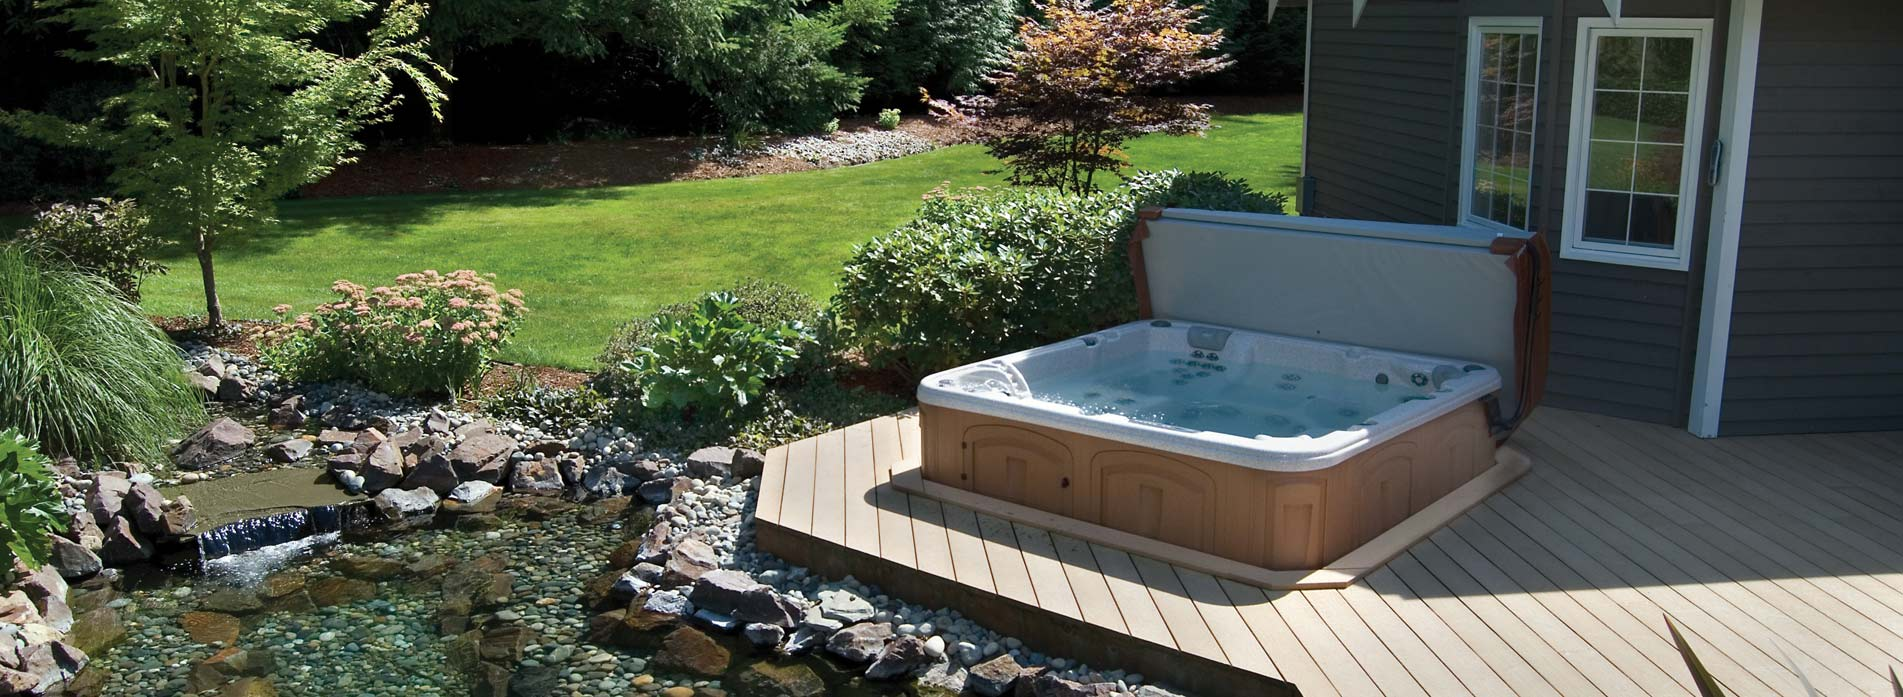 hot tubs tulsa america 39 s best lifechangers